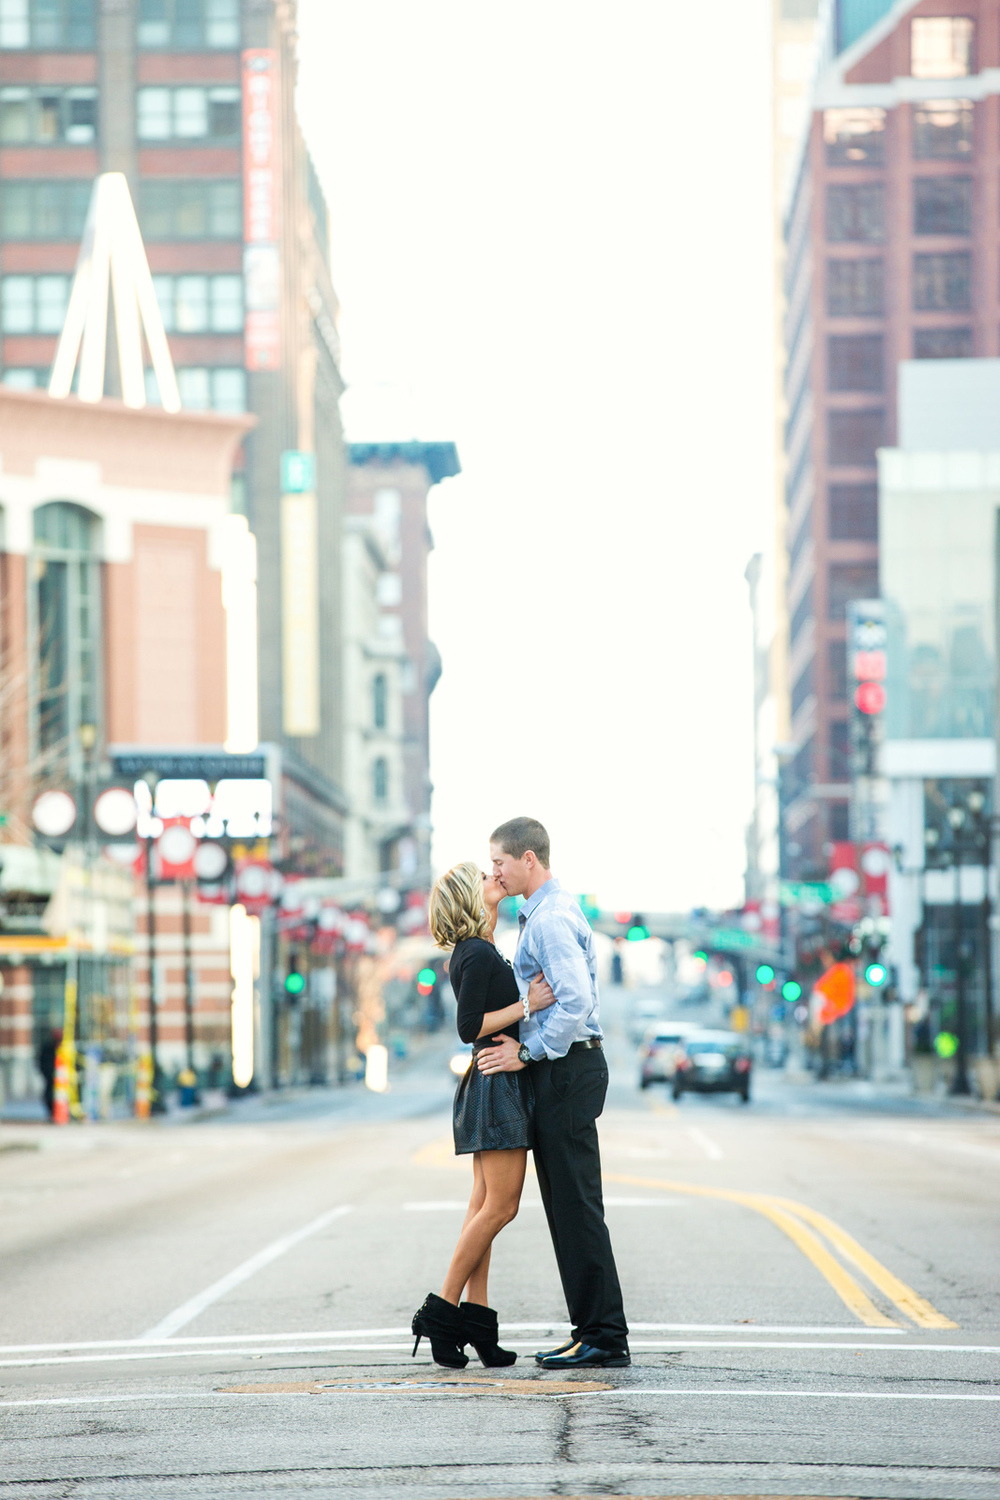 St Louis Downtown Engagement Photos_20141214_155240.jpg